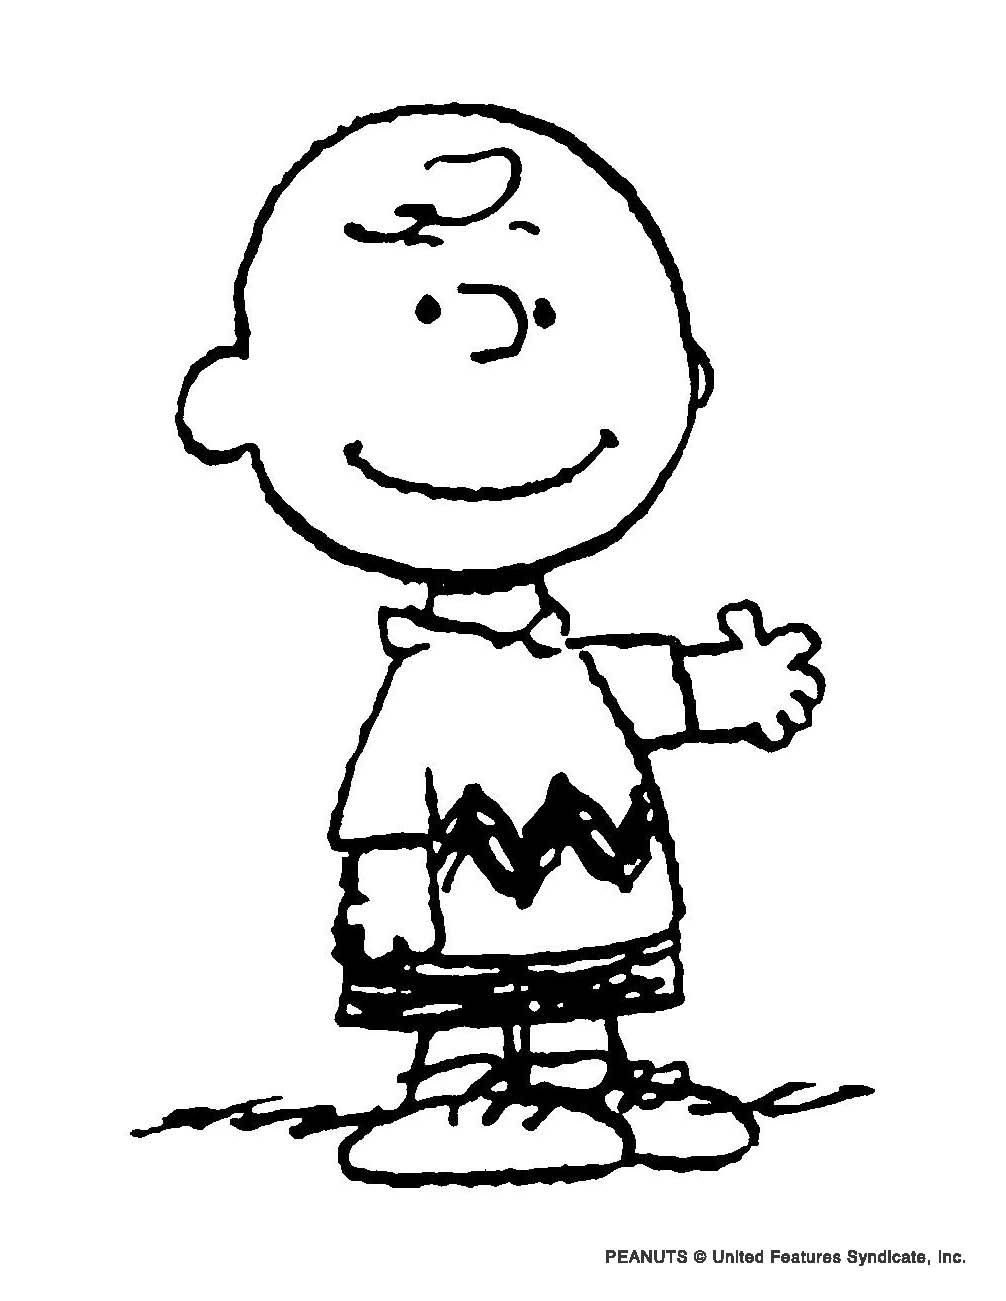 charlie brown coloring pages - Recherche Google | Charlie Brown ...